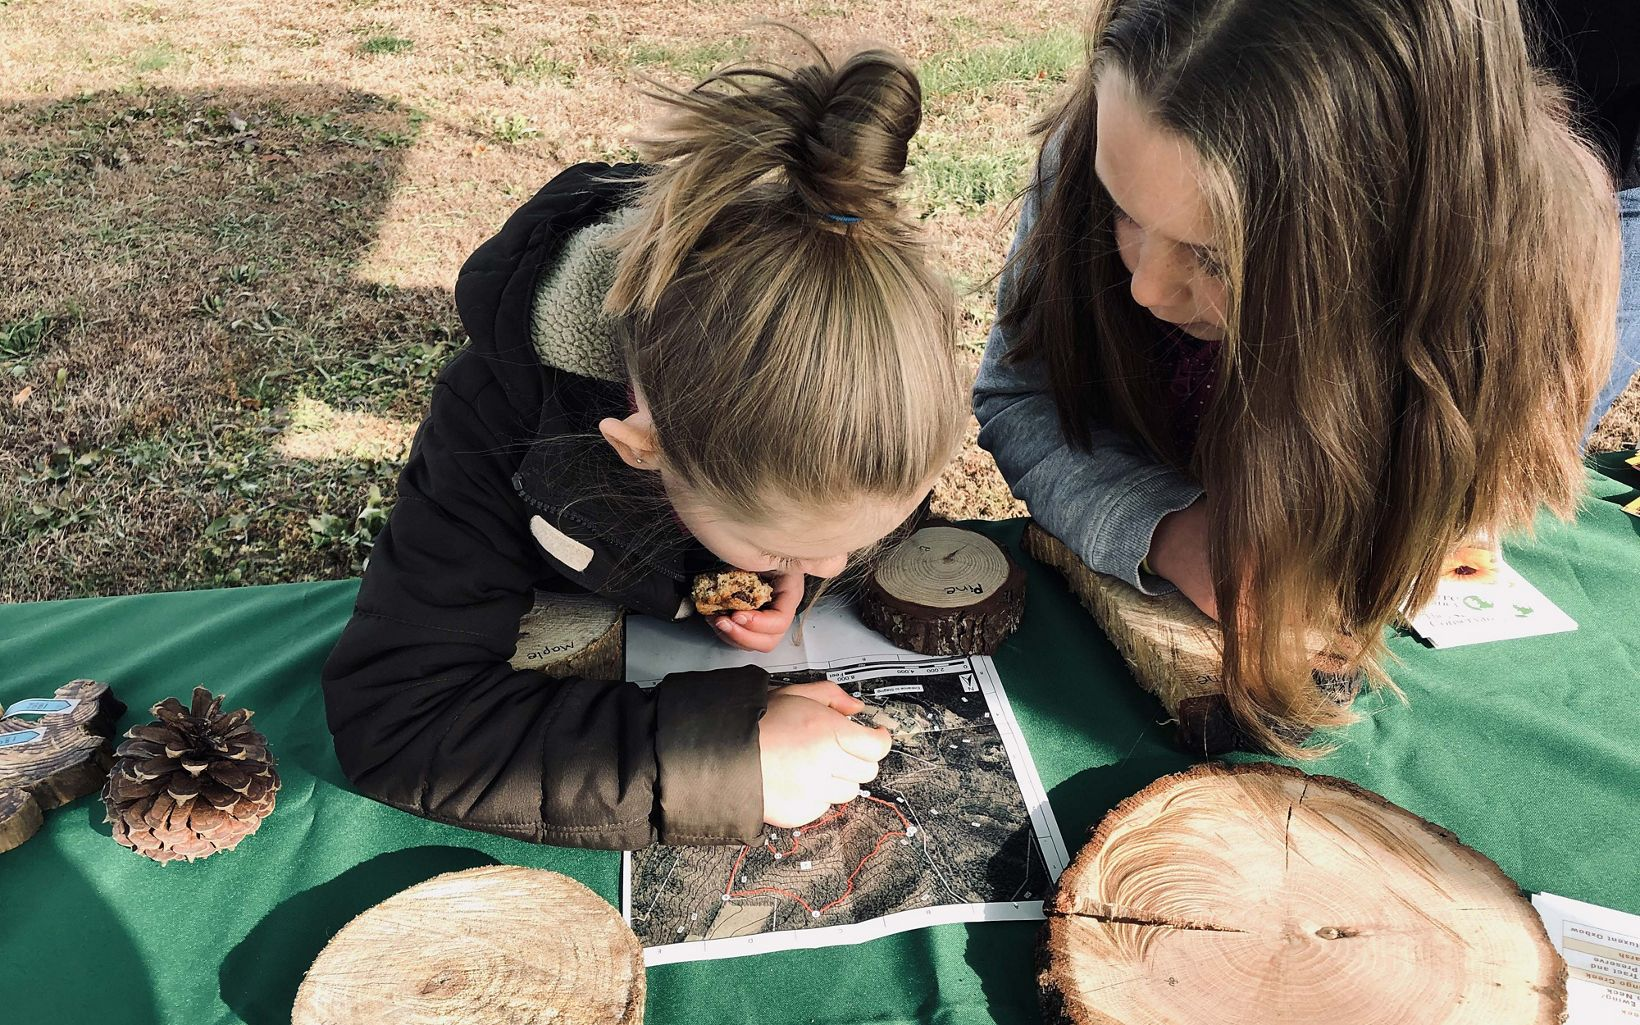 Sisters Annelie and Sadie enjoy cookies and examine a map at TNC's public viewing station during the Sideling Hill Creek Controlled burn, November 21, 2019.